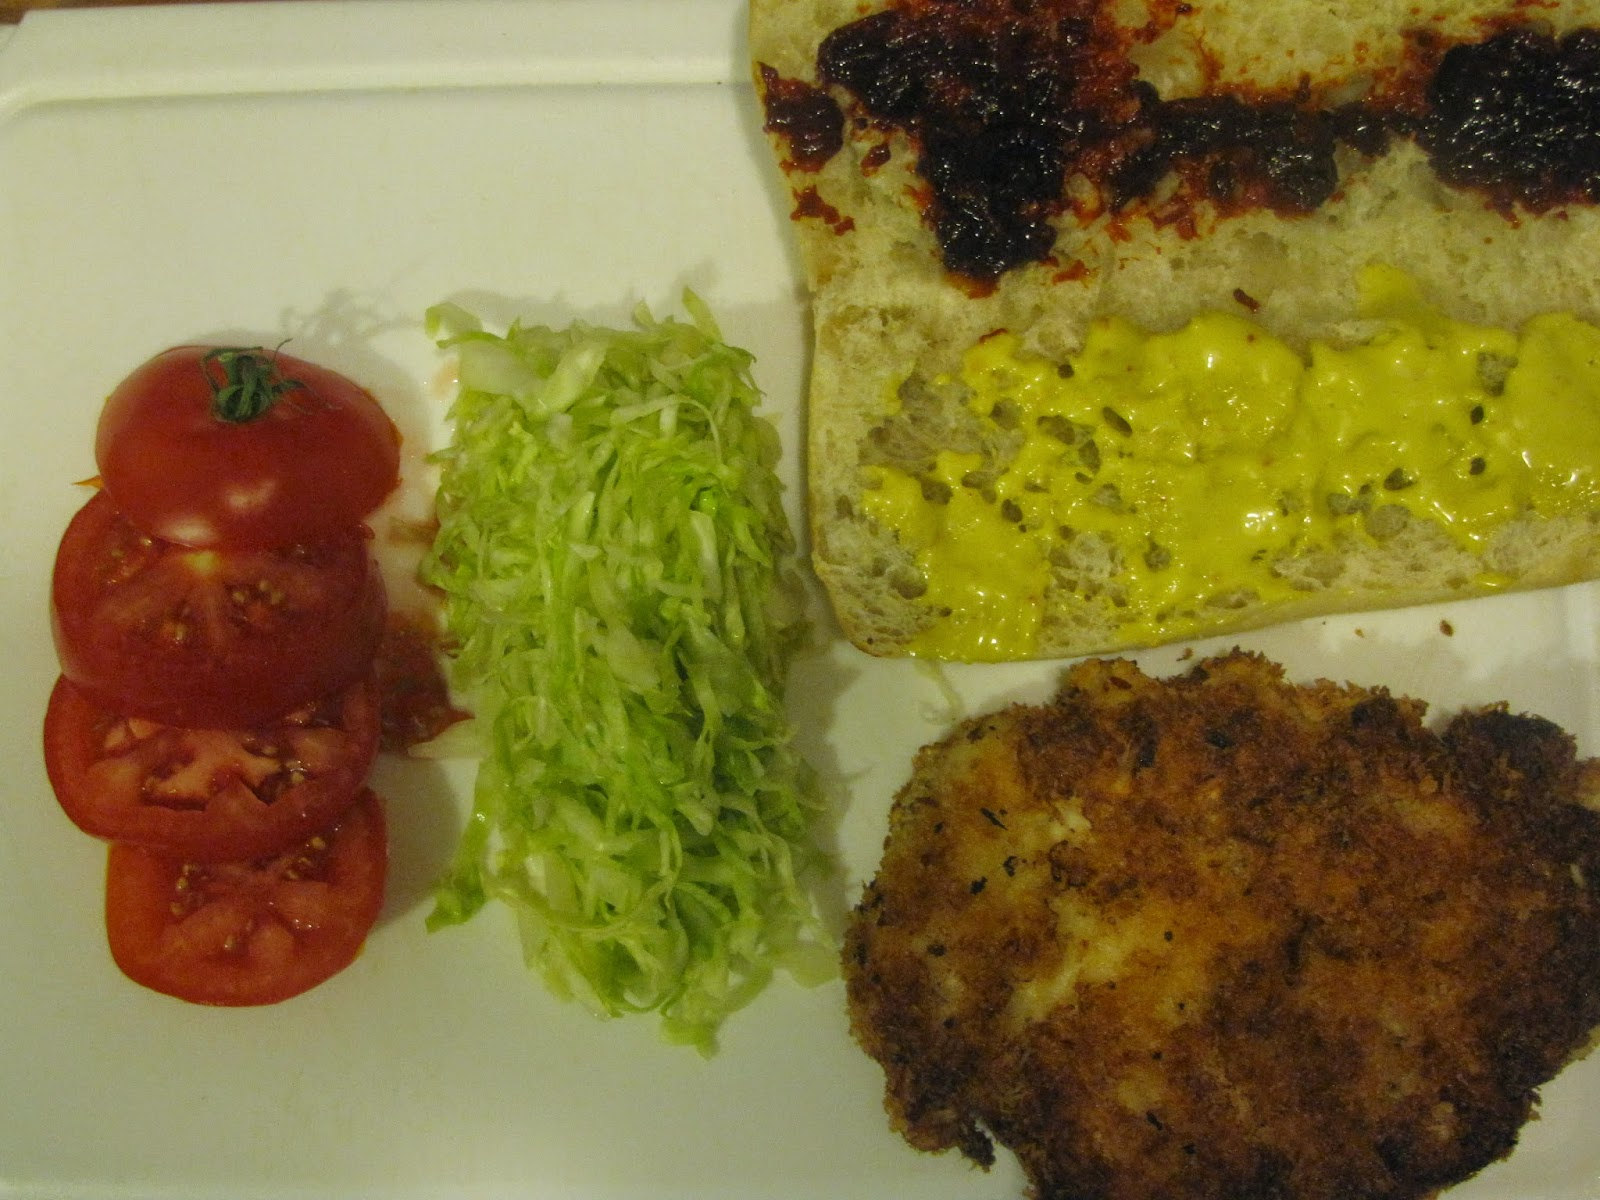 Tomato, cabbage, fried chicken and dressed ciabatta sandwich roll on a white chopping board